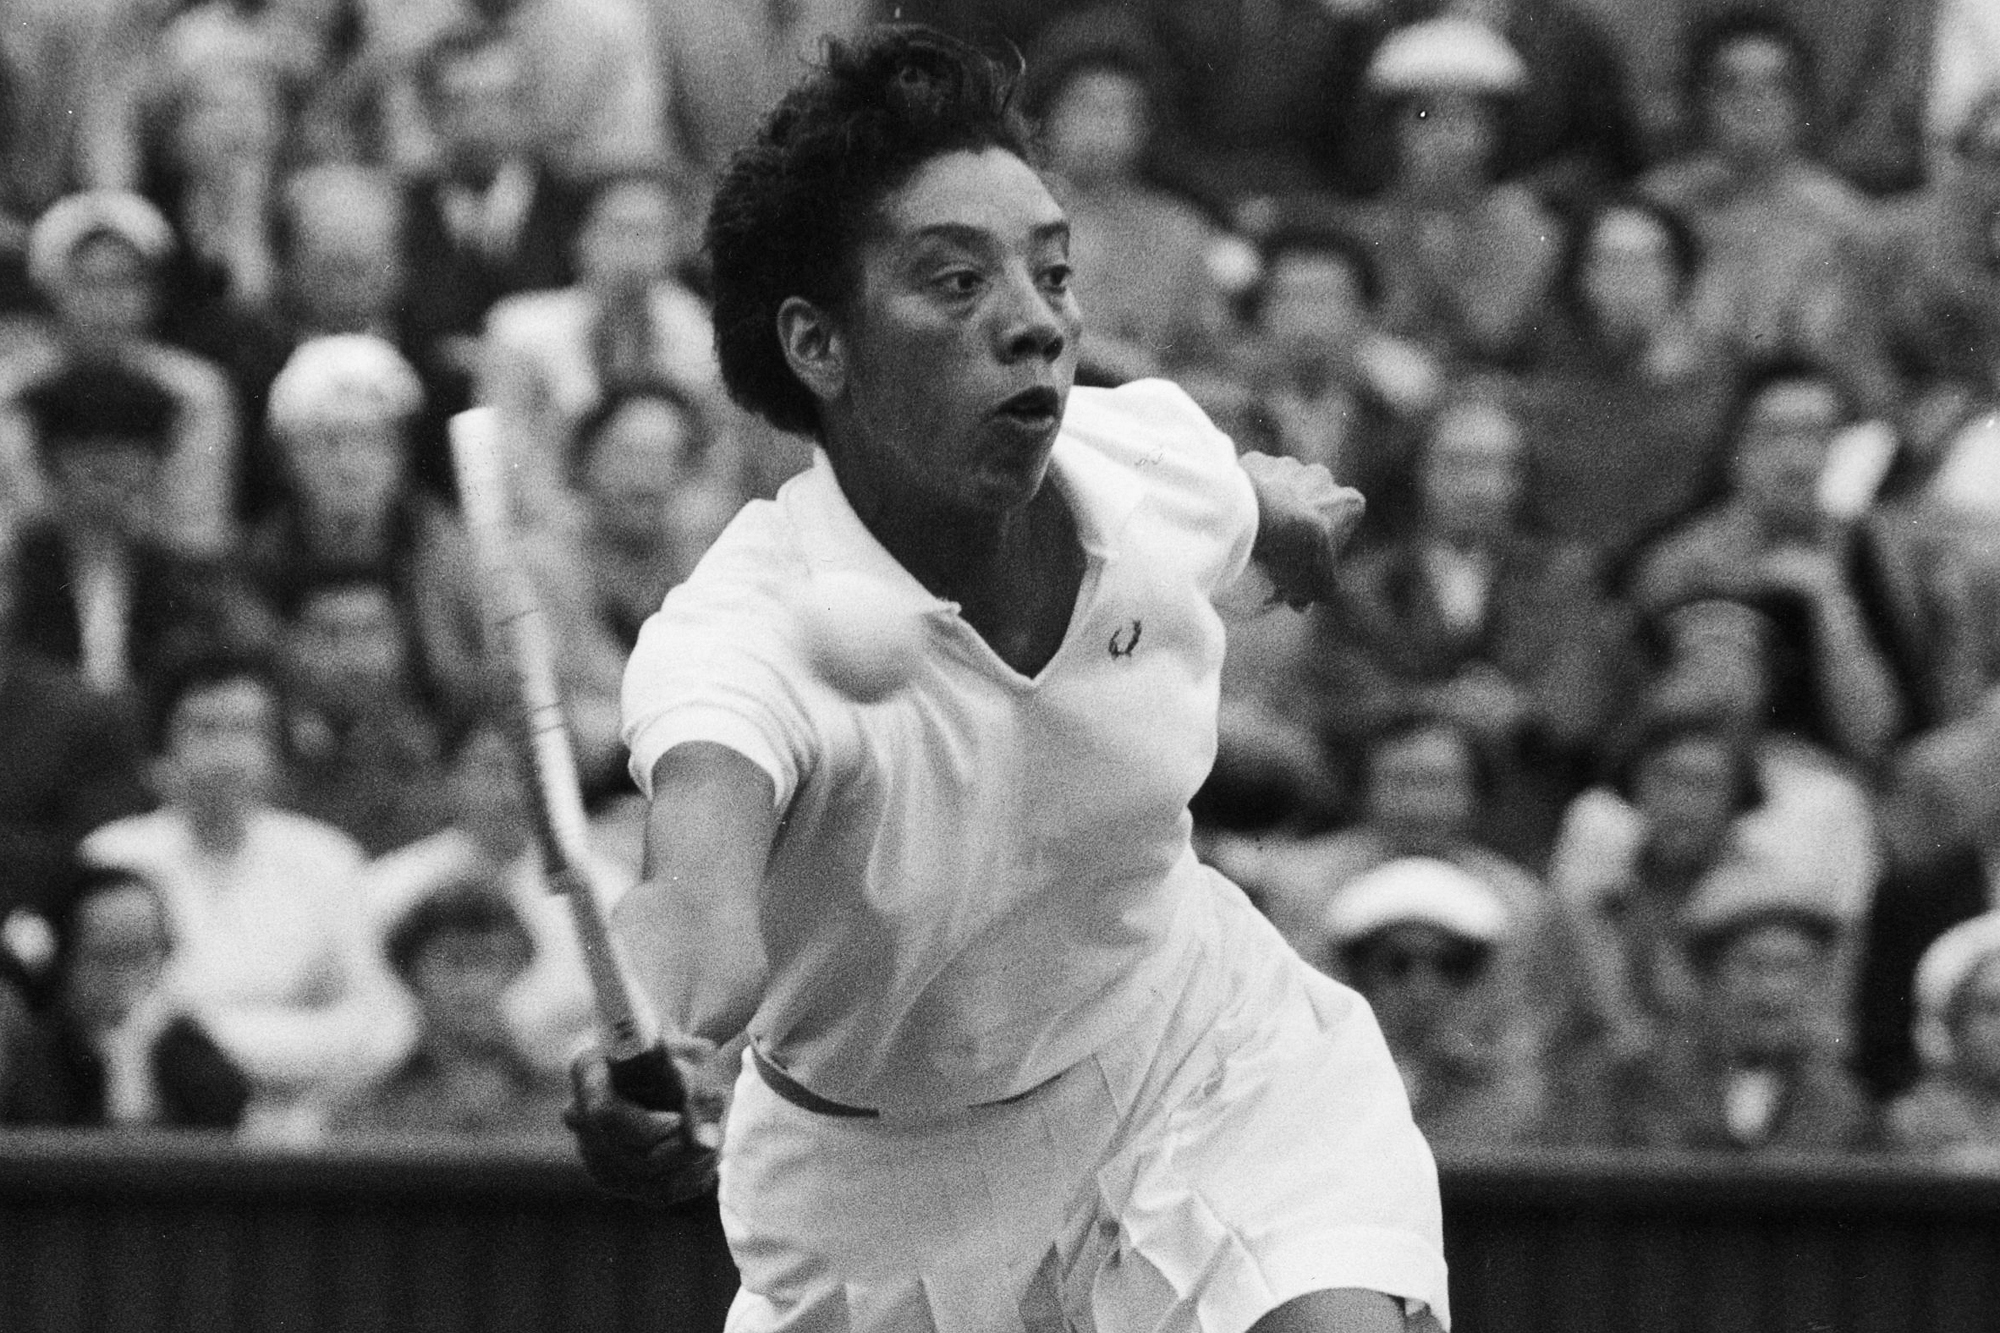 America's Althea Gibson in play against Shirley Fry on the centre court at Wimbledon, London, during the 1956 women's quarter finals.